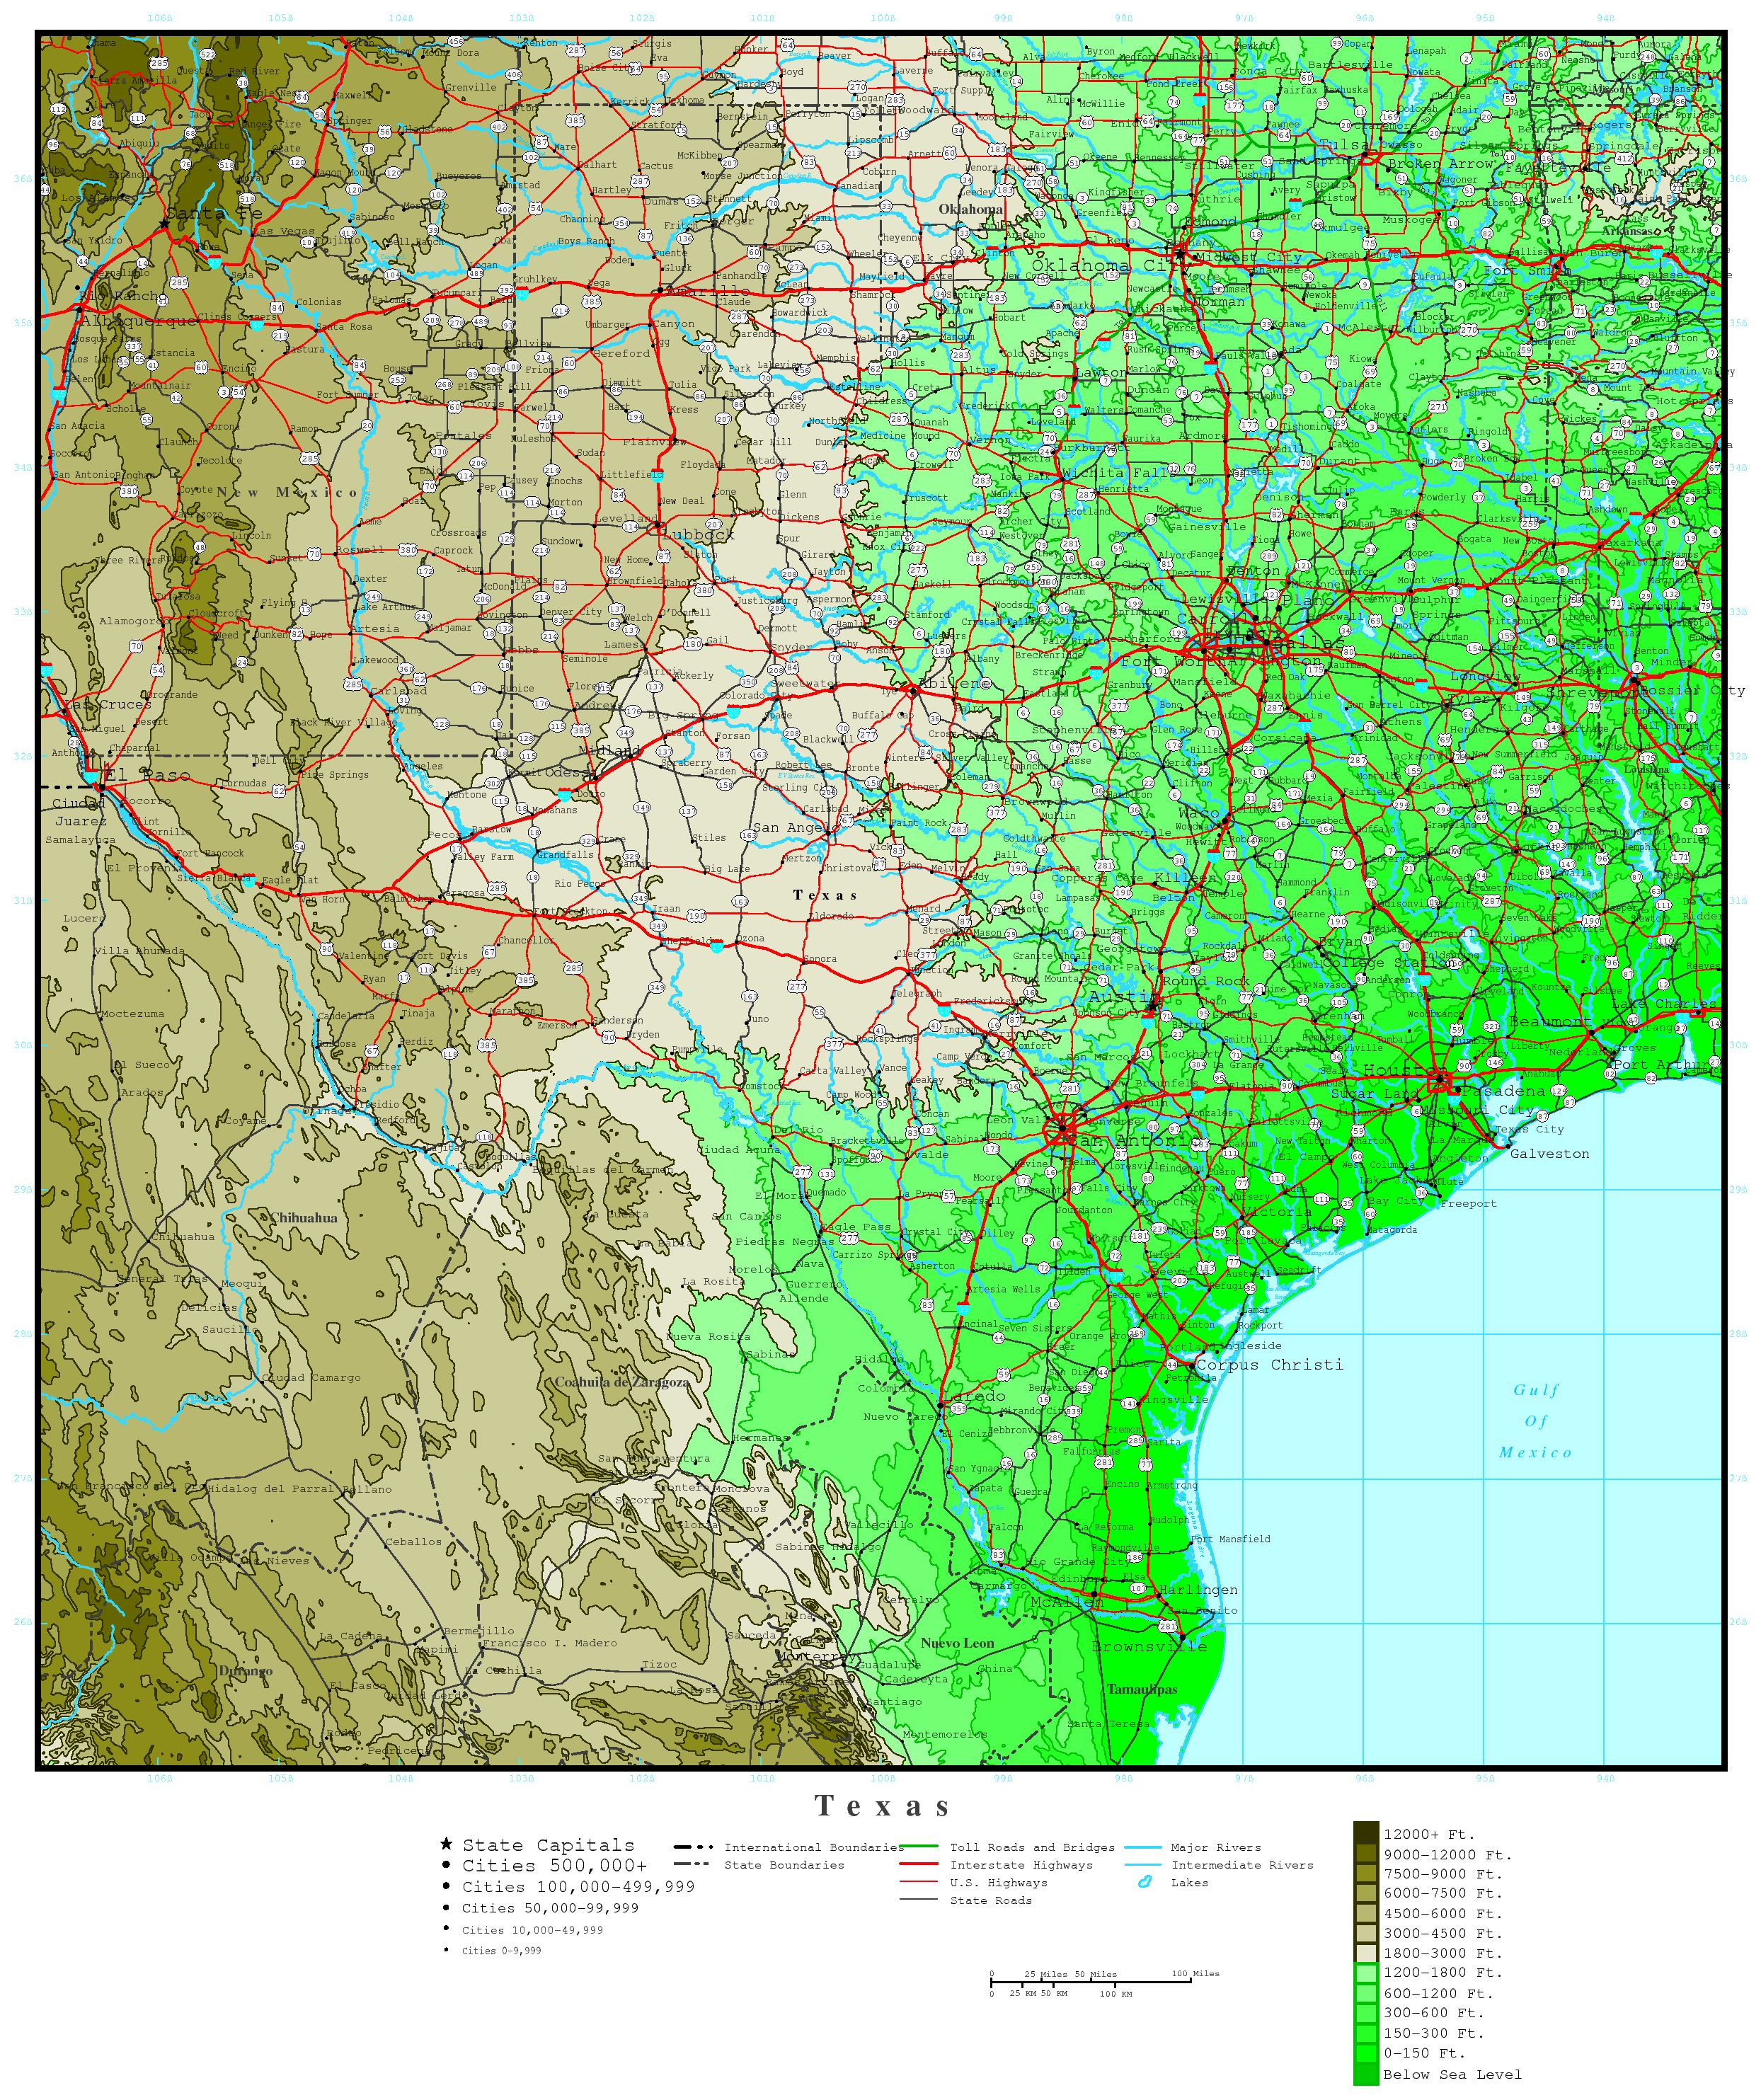 Texas Elevation Map - Map of texas showing major cities